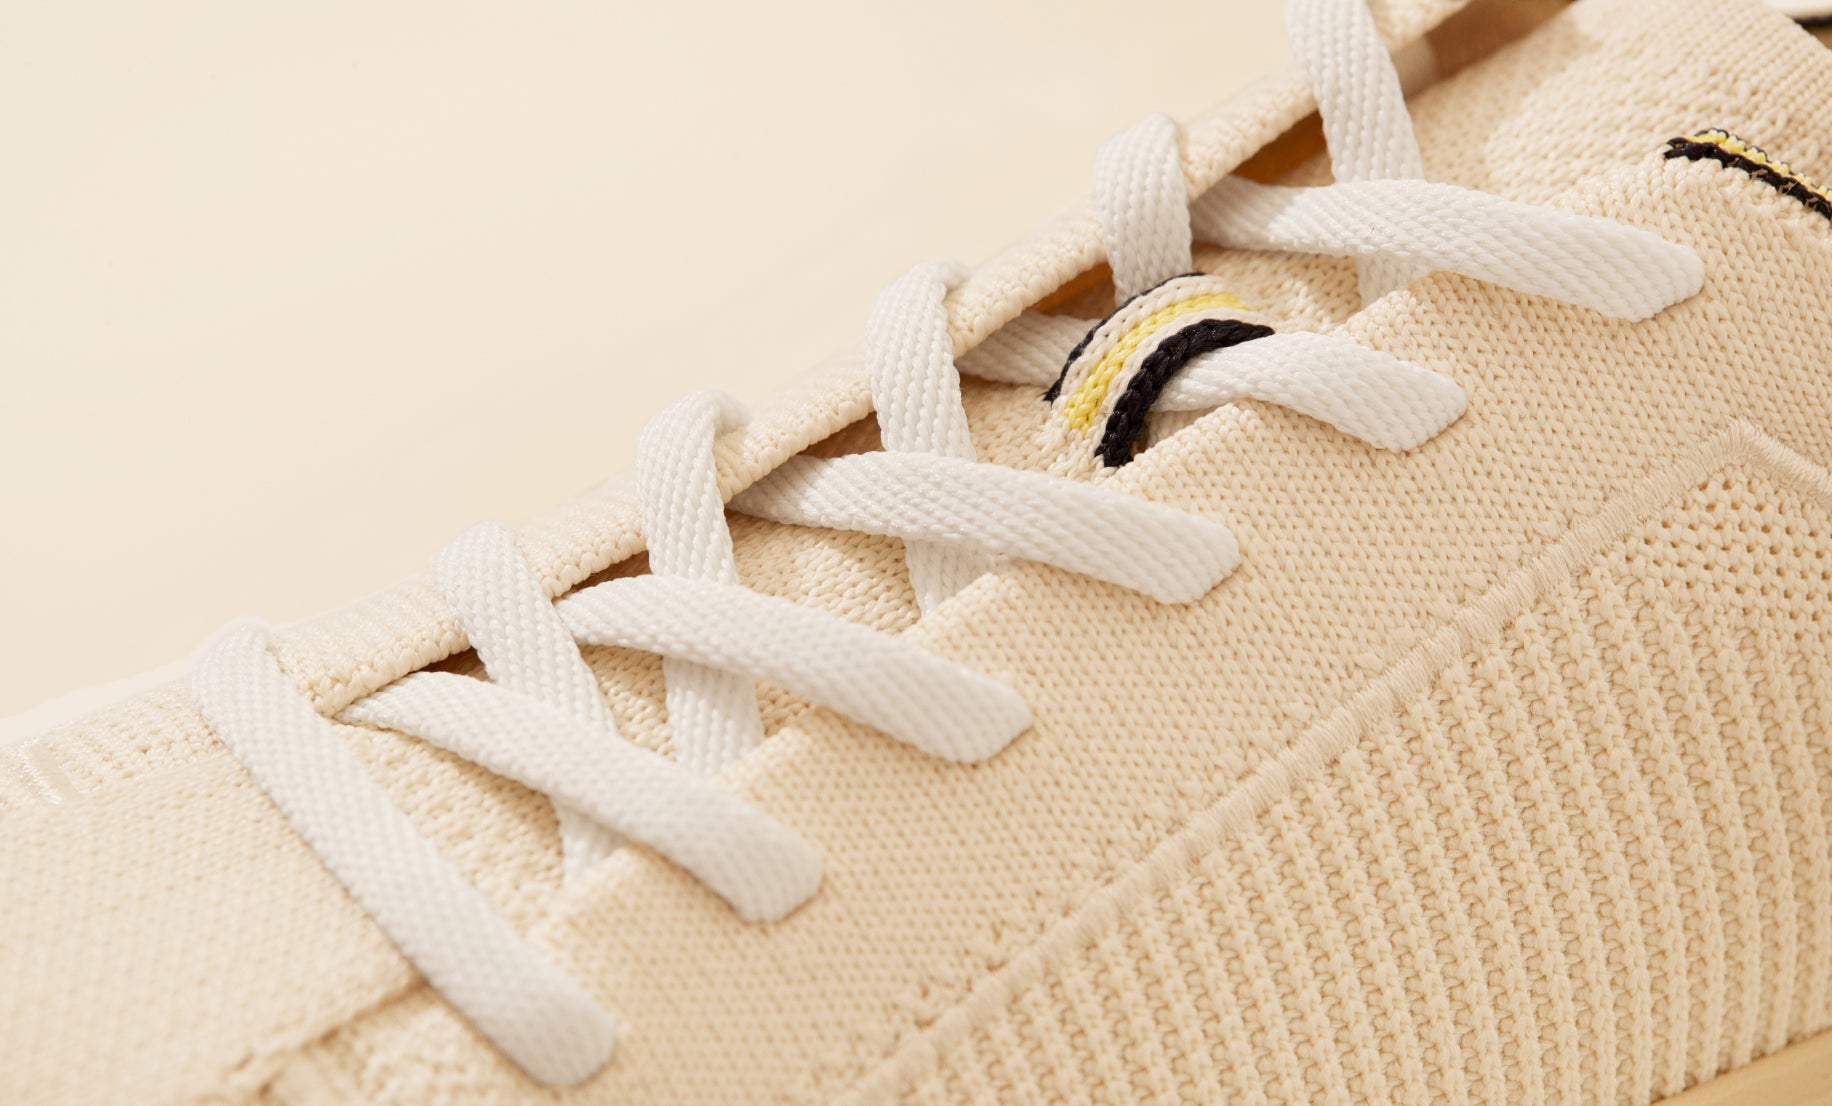 Close up of the laces of The Lace Up in Vanilla, showing the striped navy, yellow and white lace stay detail.